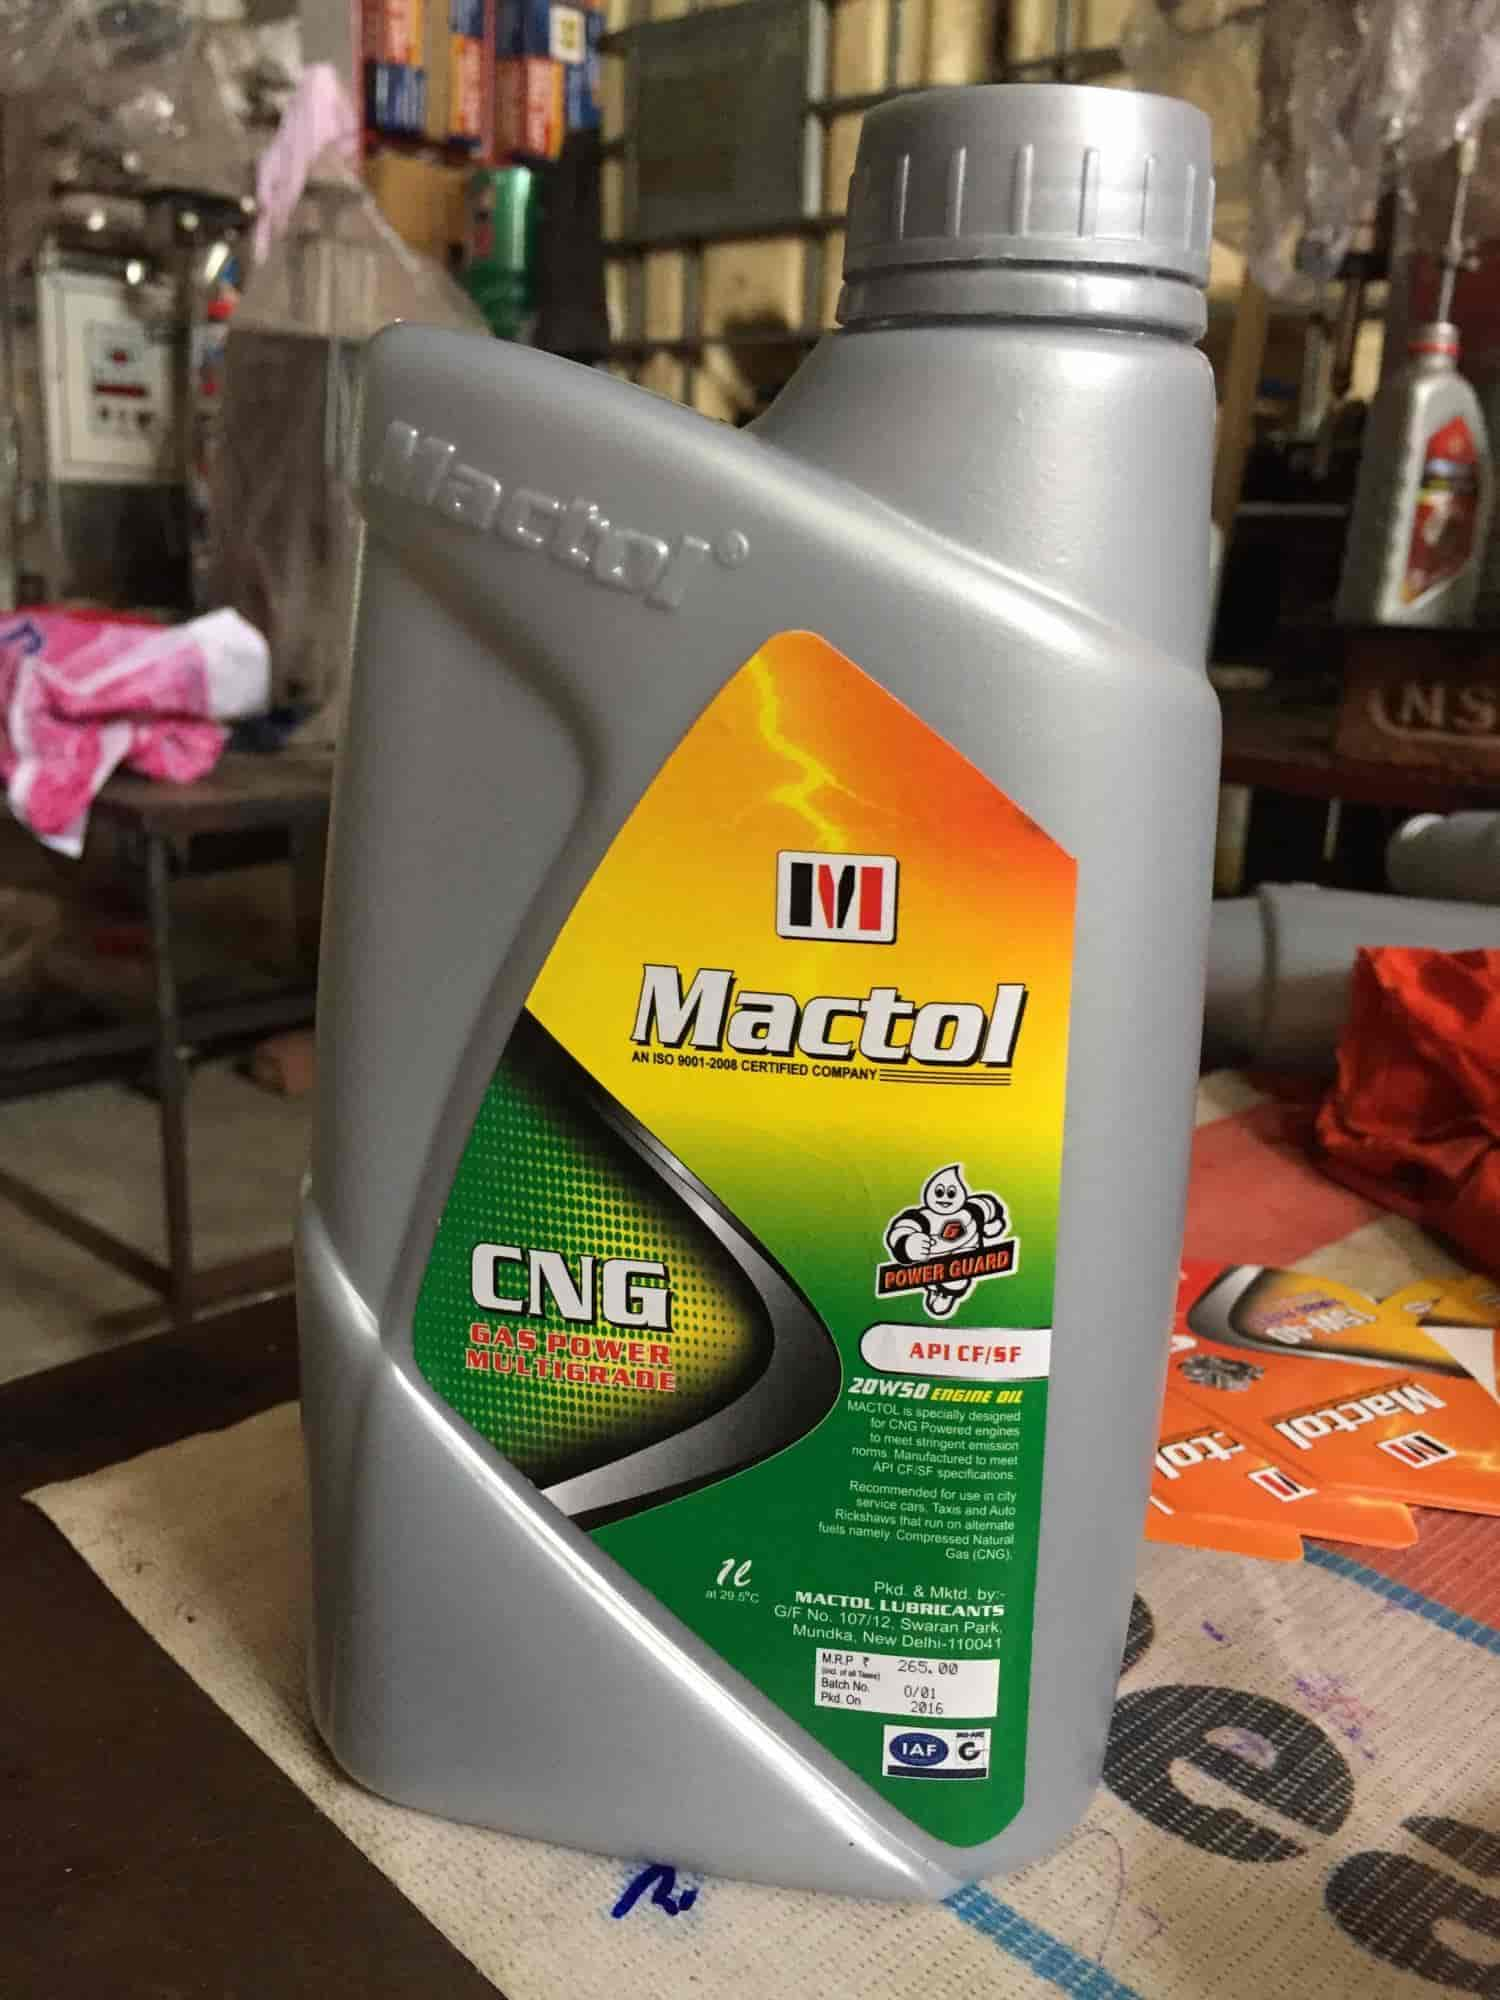 Mactol Lubrication, Nangloi - Lubricant Oil Manufacturers in